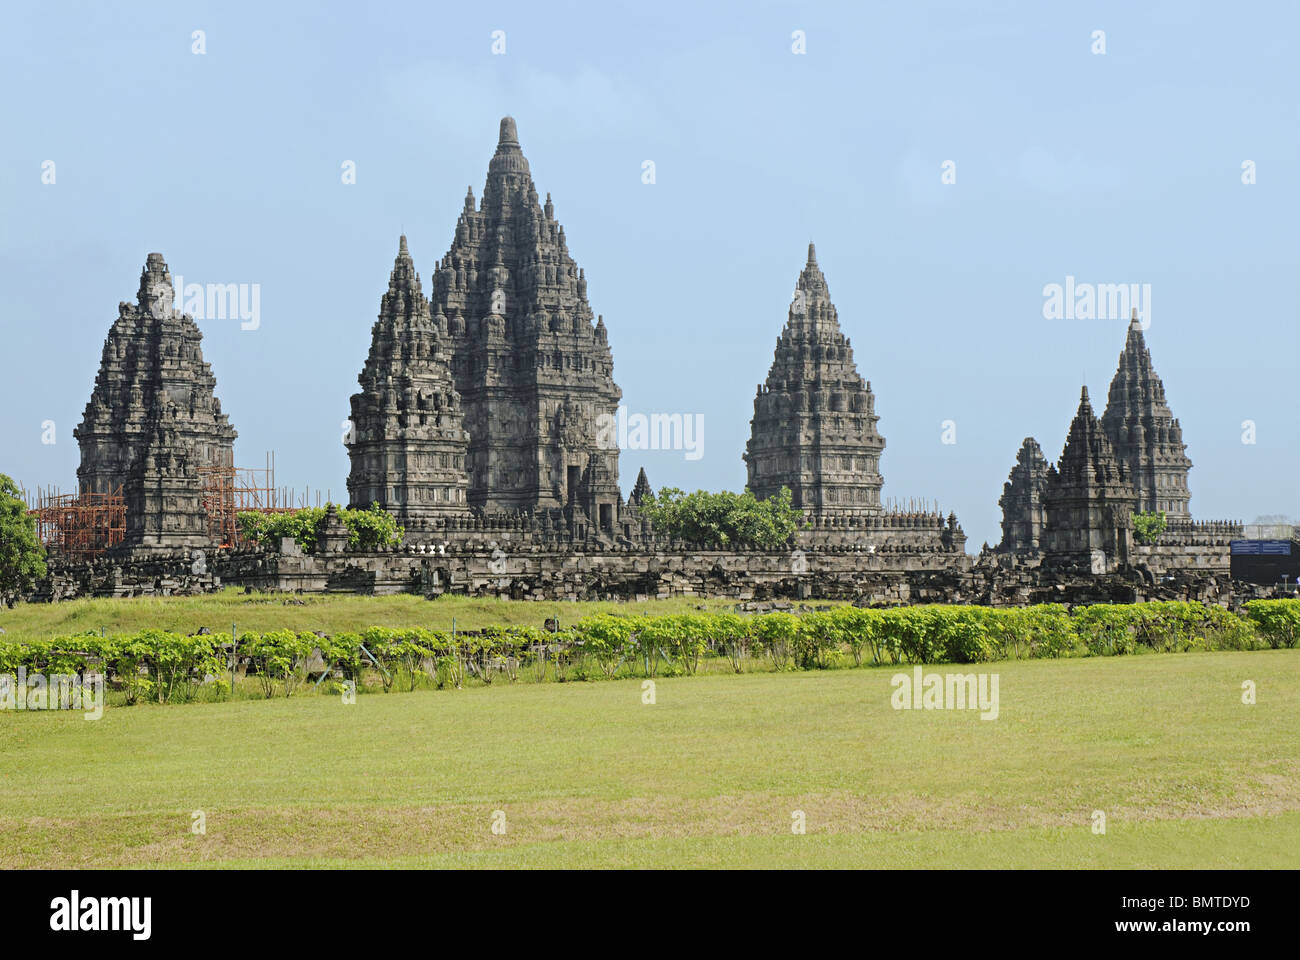 Indonesia-Java, Prambanan group of temples, 8th-9th century A.D. The largest temple is dedicated to Lord Shiva - Stock Image